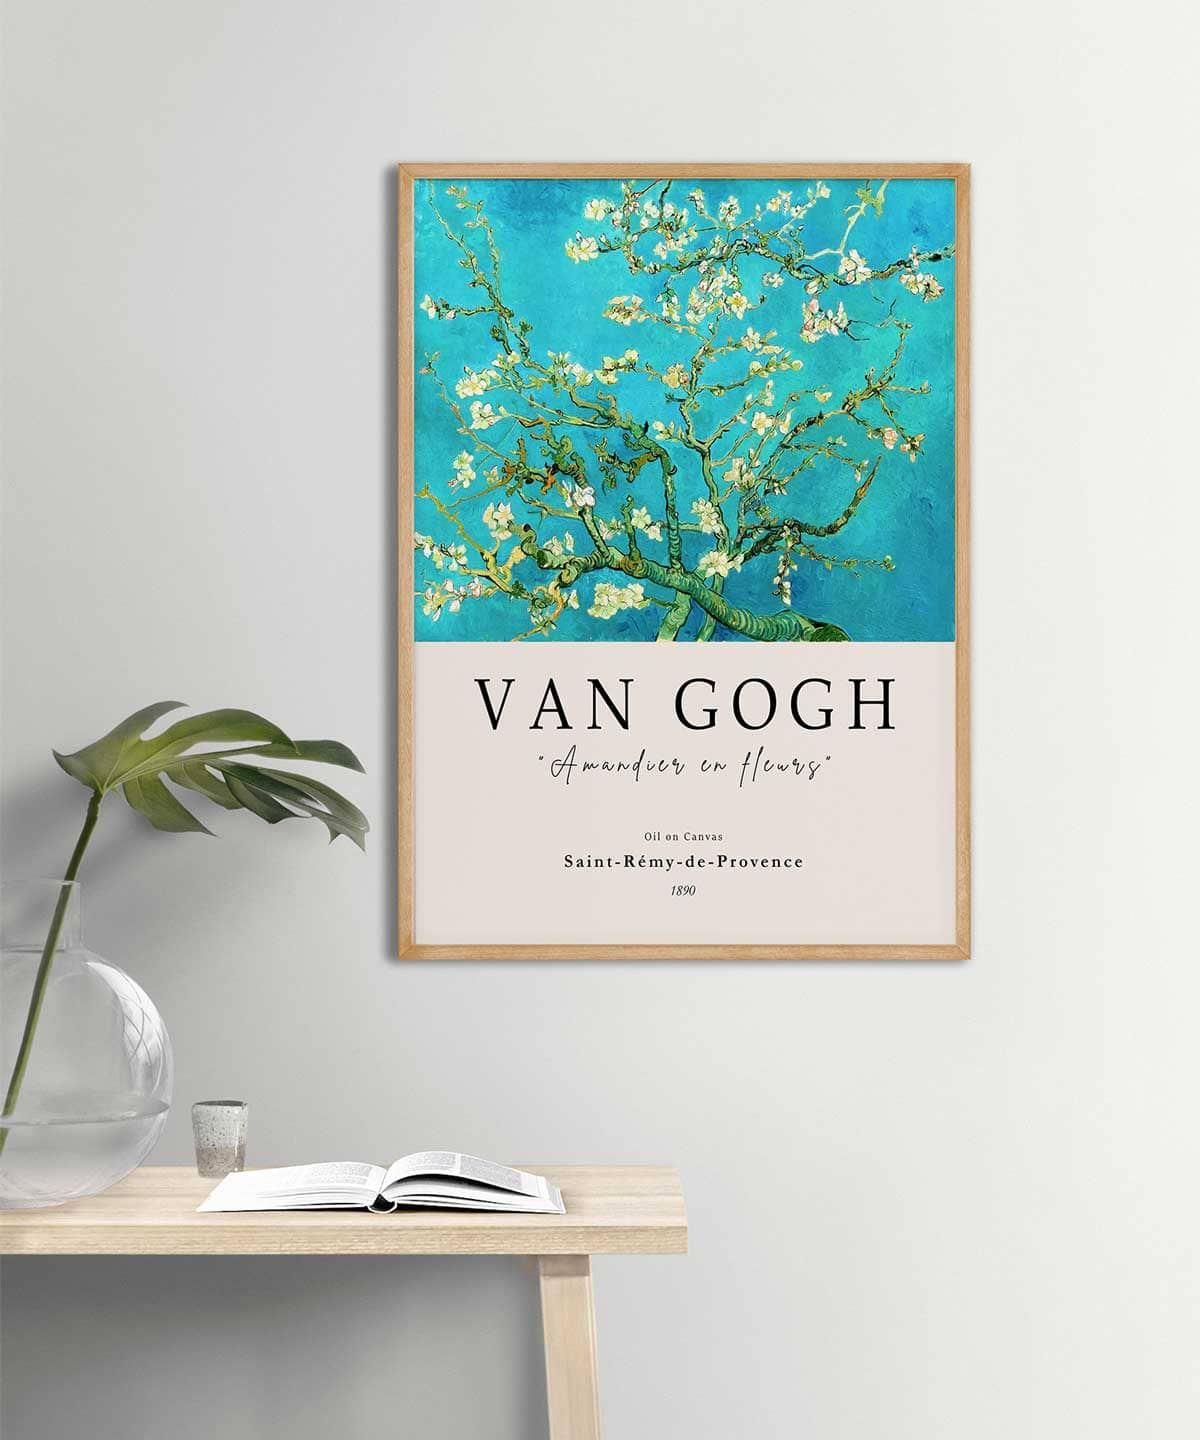 Van-Gogh-Blossoming-Almond-Tree-Poster-on-Wall-Wooden-Frame-Duwart